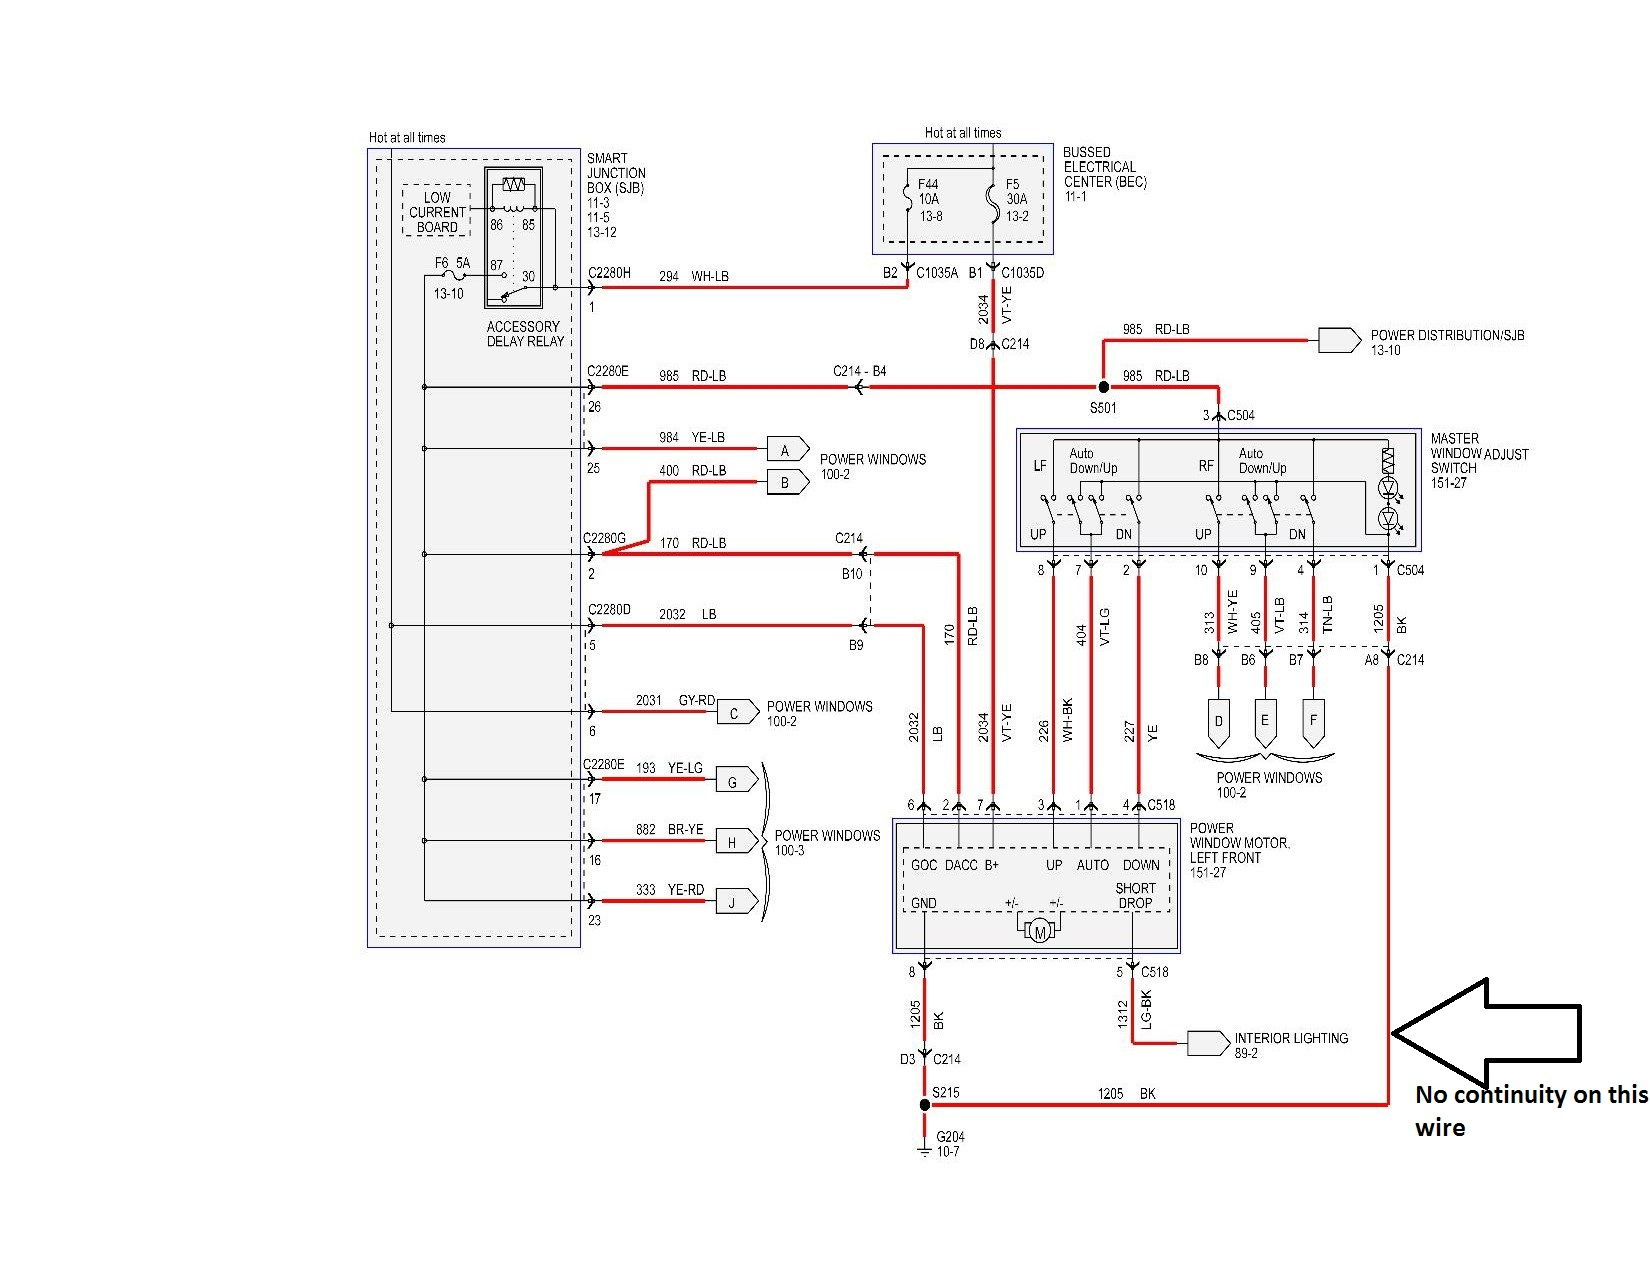 Infinity Blink Wiring Diagram Page 4 And Schematics Safc 2 1995 Dodge Ram 1500 Radio Dynante Info Beautiful Also Further Centralairhandler As Well Together